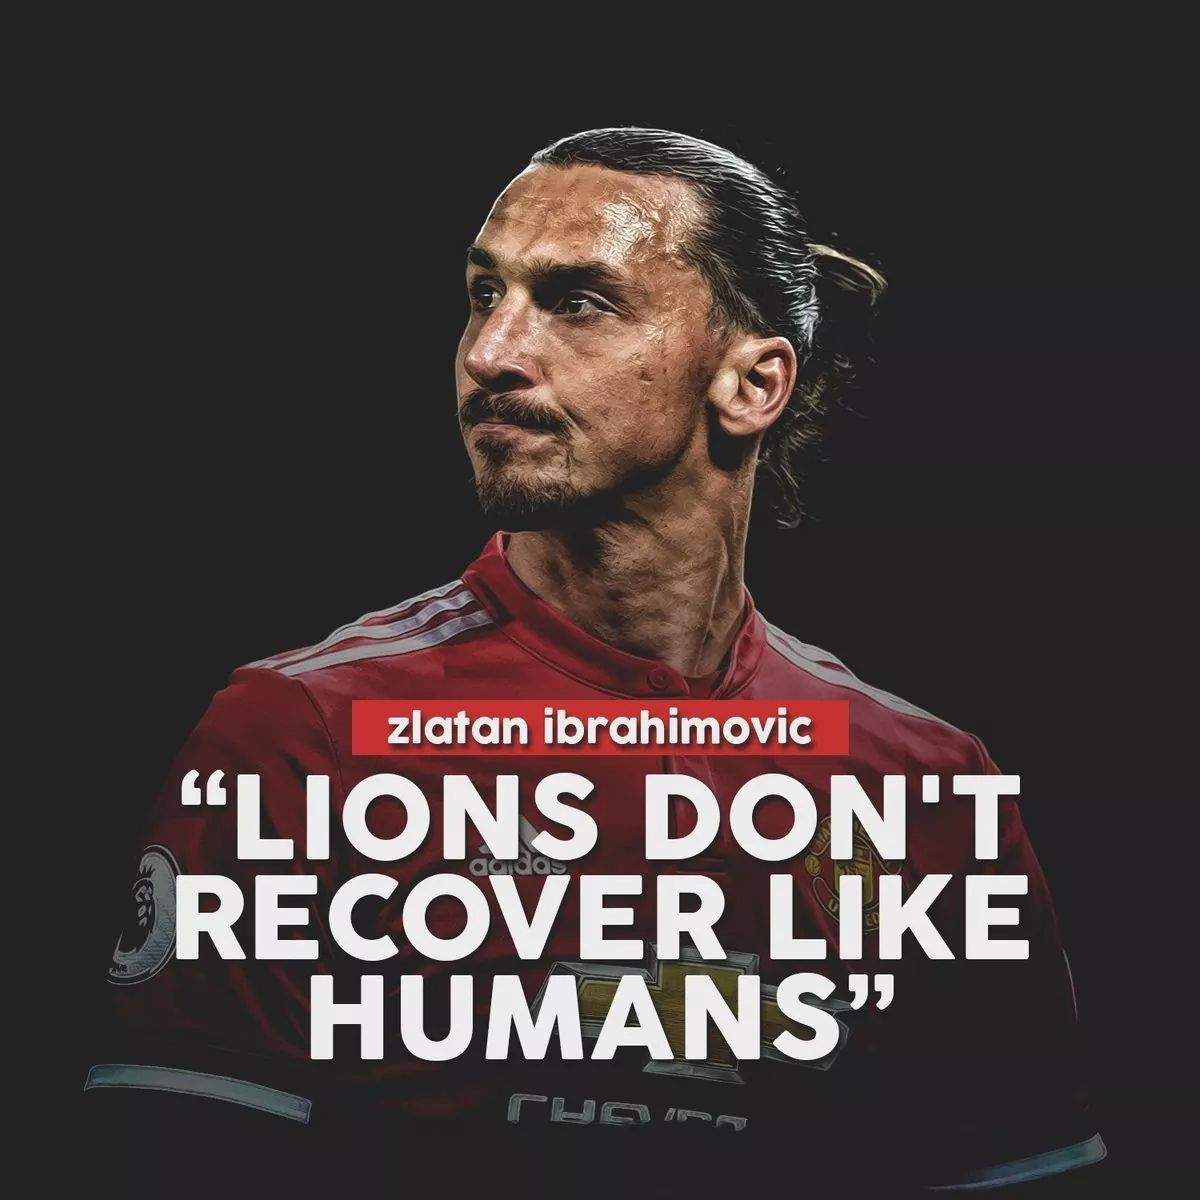 Pin by 黄涛 on Manchester United | Zlatan ibrahimović, Zlatan quotes, Quotes